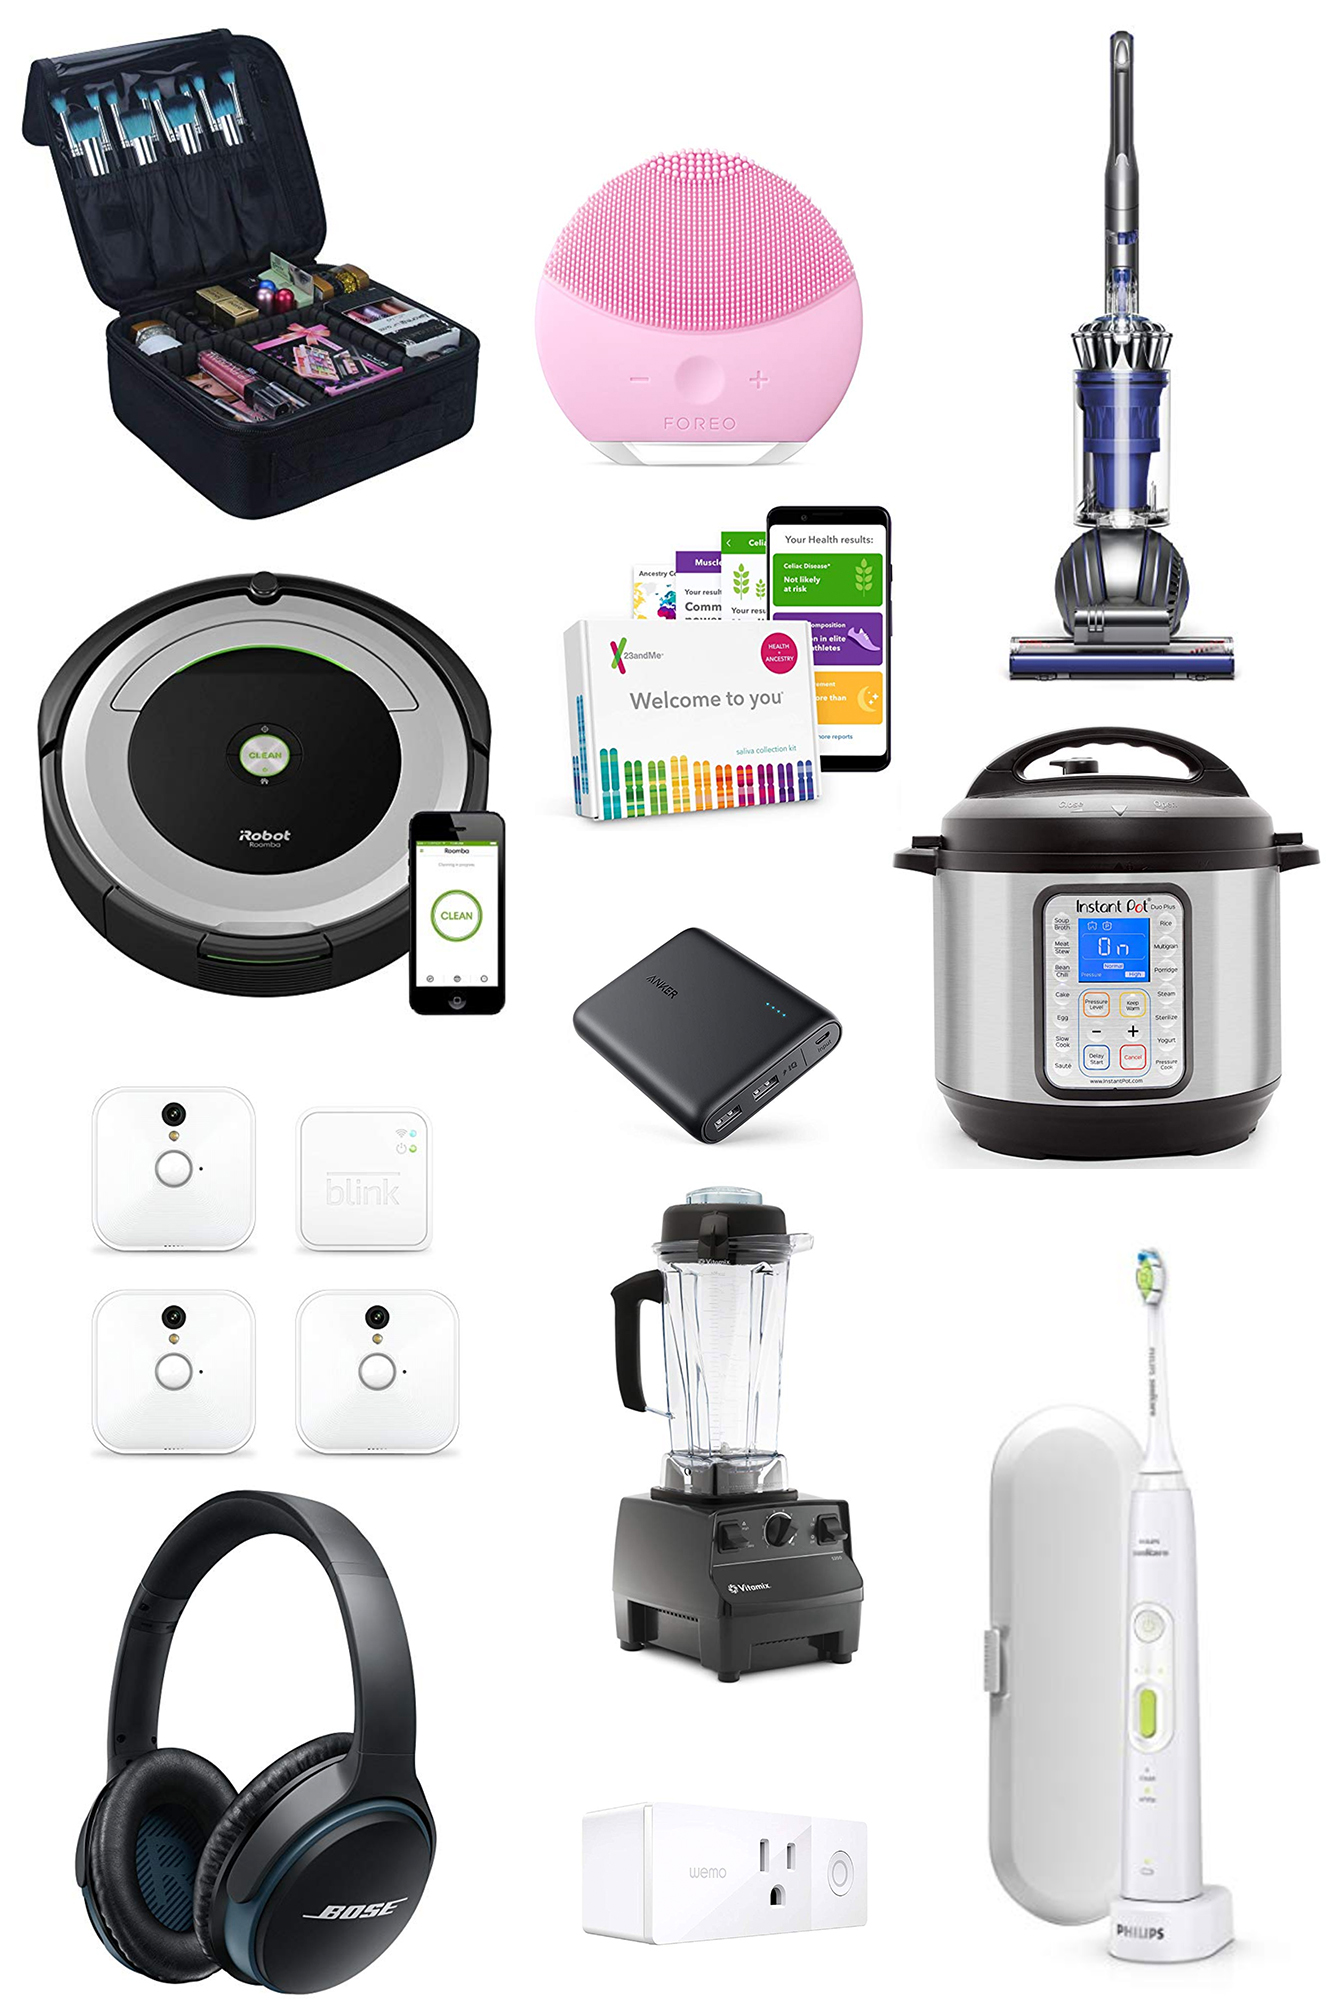 Shopping Amazon Prime Day 2019 - All of my favorites from the major sale including smart home, beauty, cooking, tech and more!